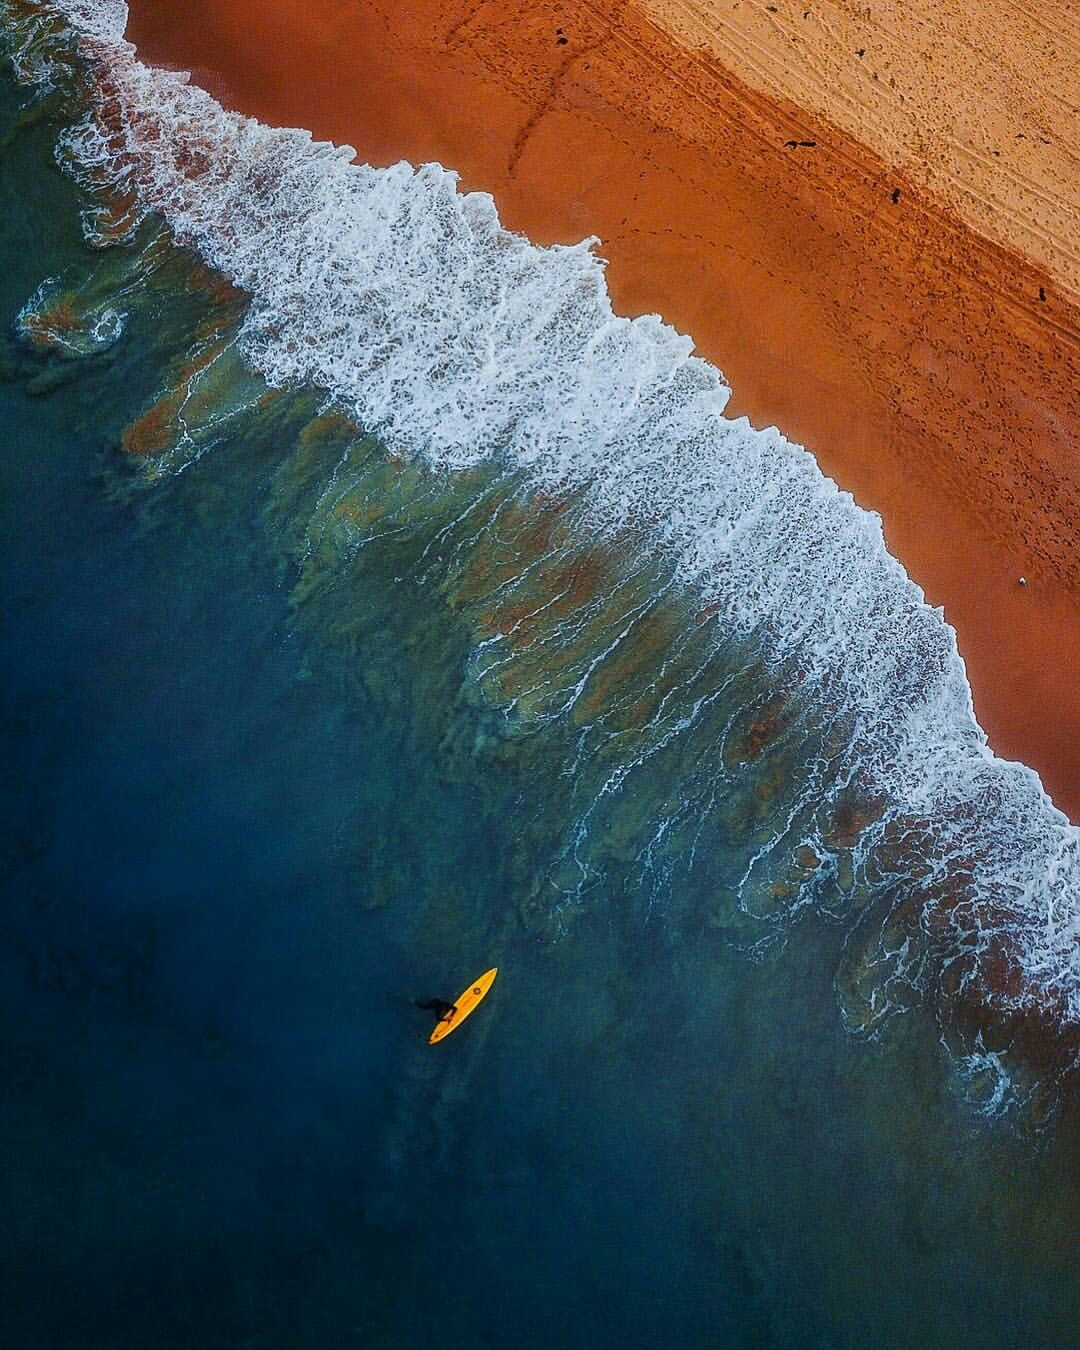 Pin By Adele Claassens On Drone Photography Bird S Eye View Aerial Photography Aerial Drone Photography